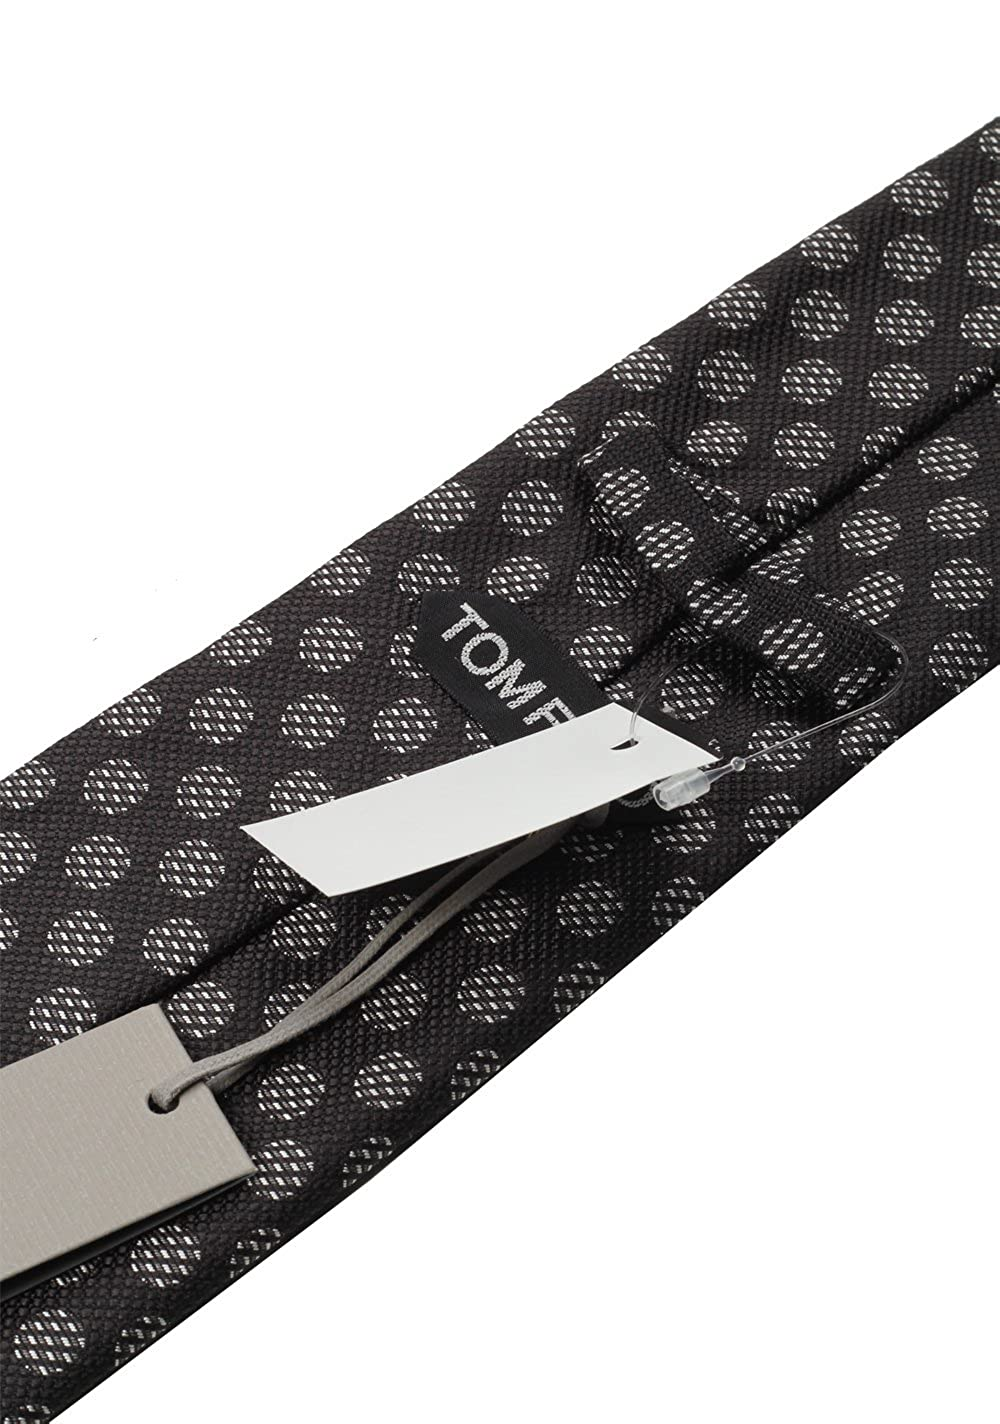 TOM FORD Patterned Black Tie In Silk CL